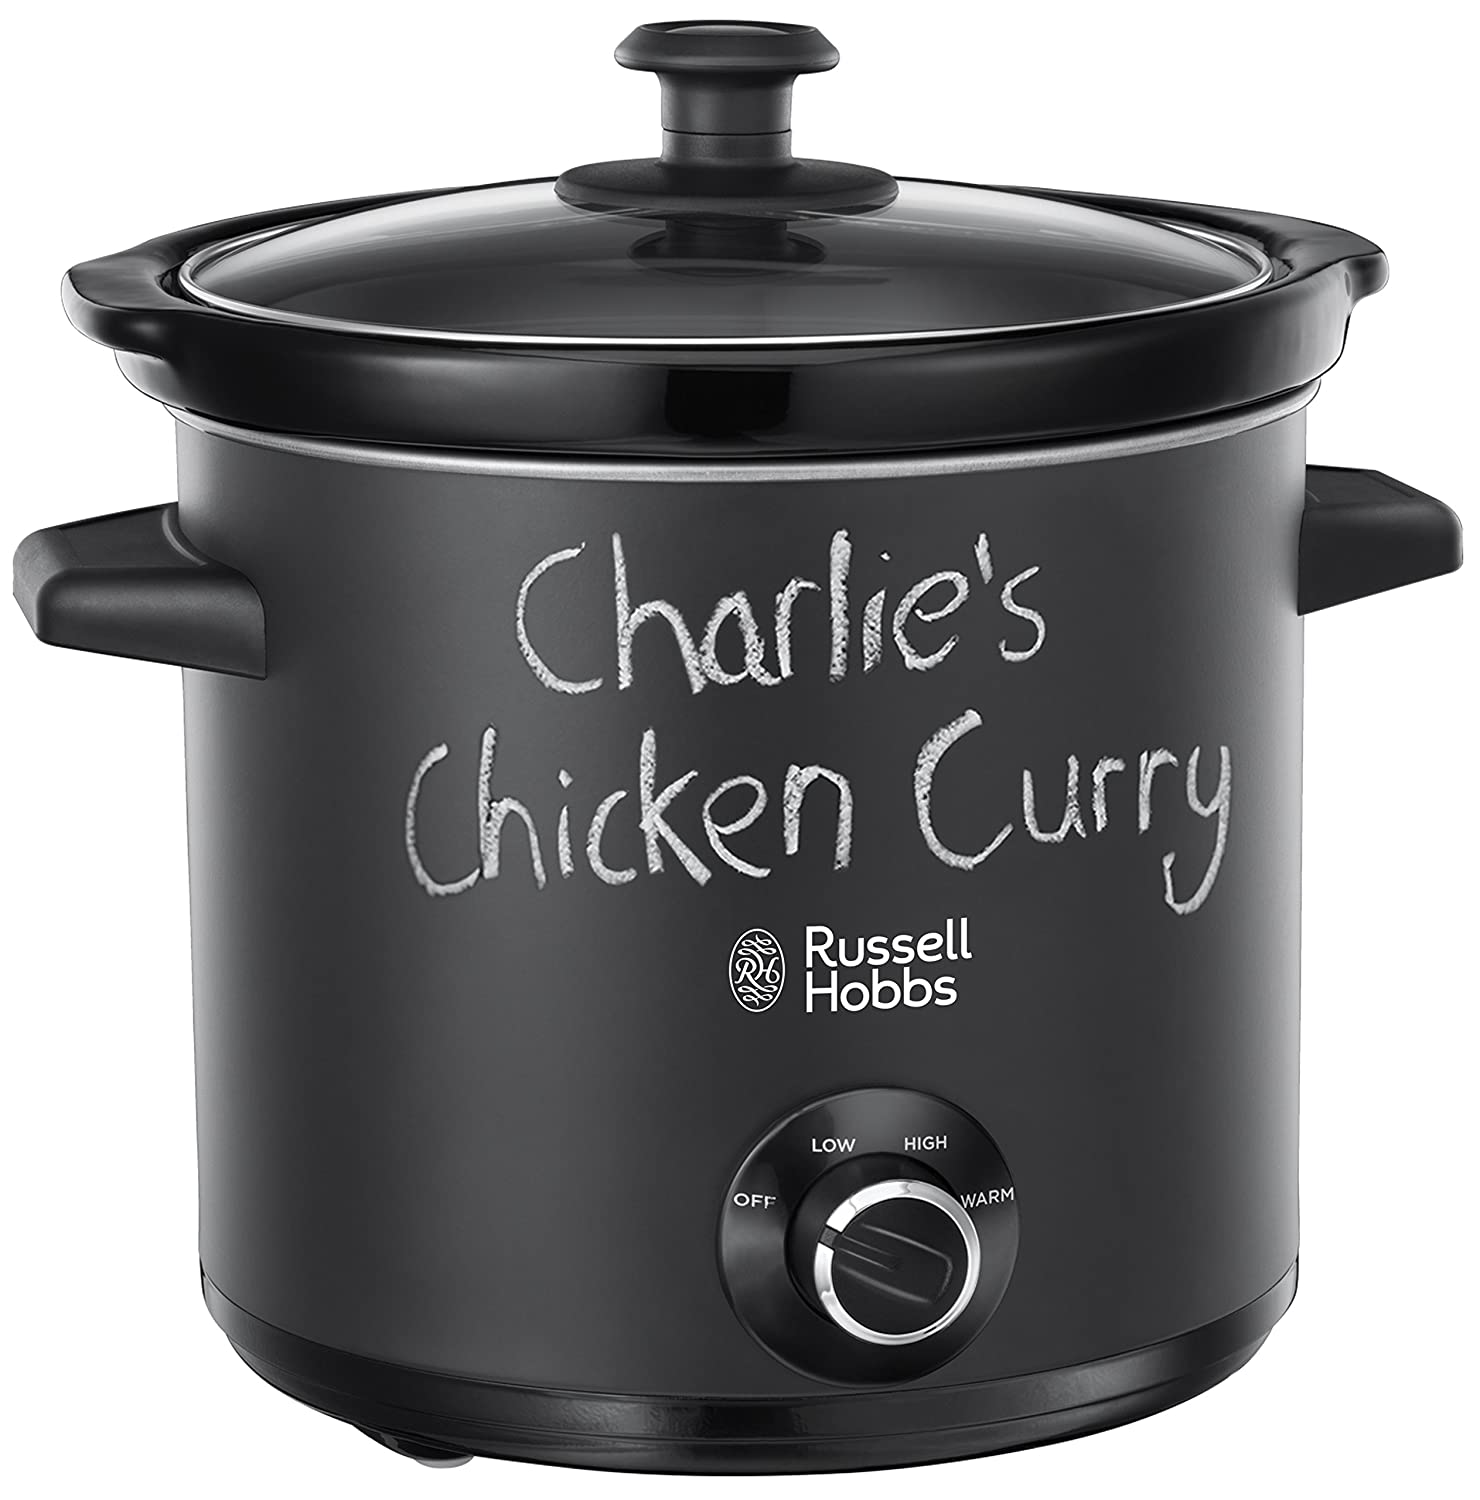 The Russell Hobbs Chalkboard Slow Cooker